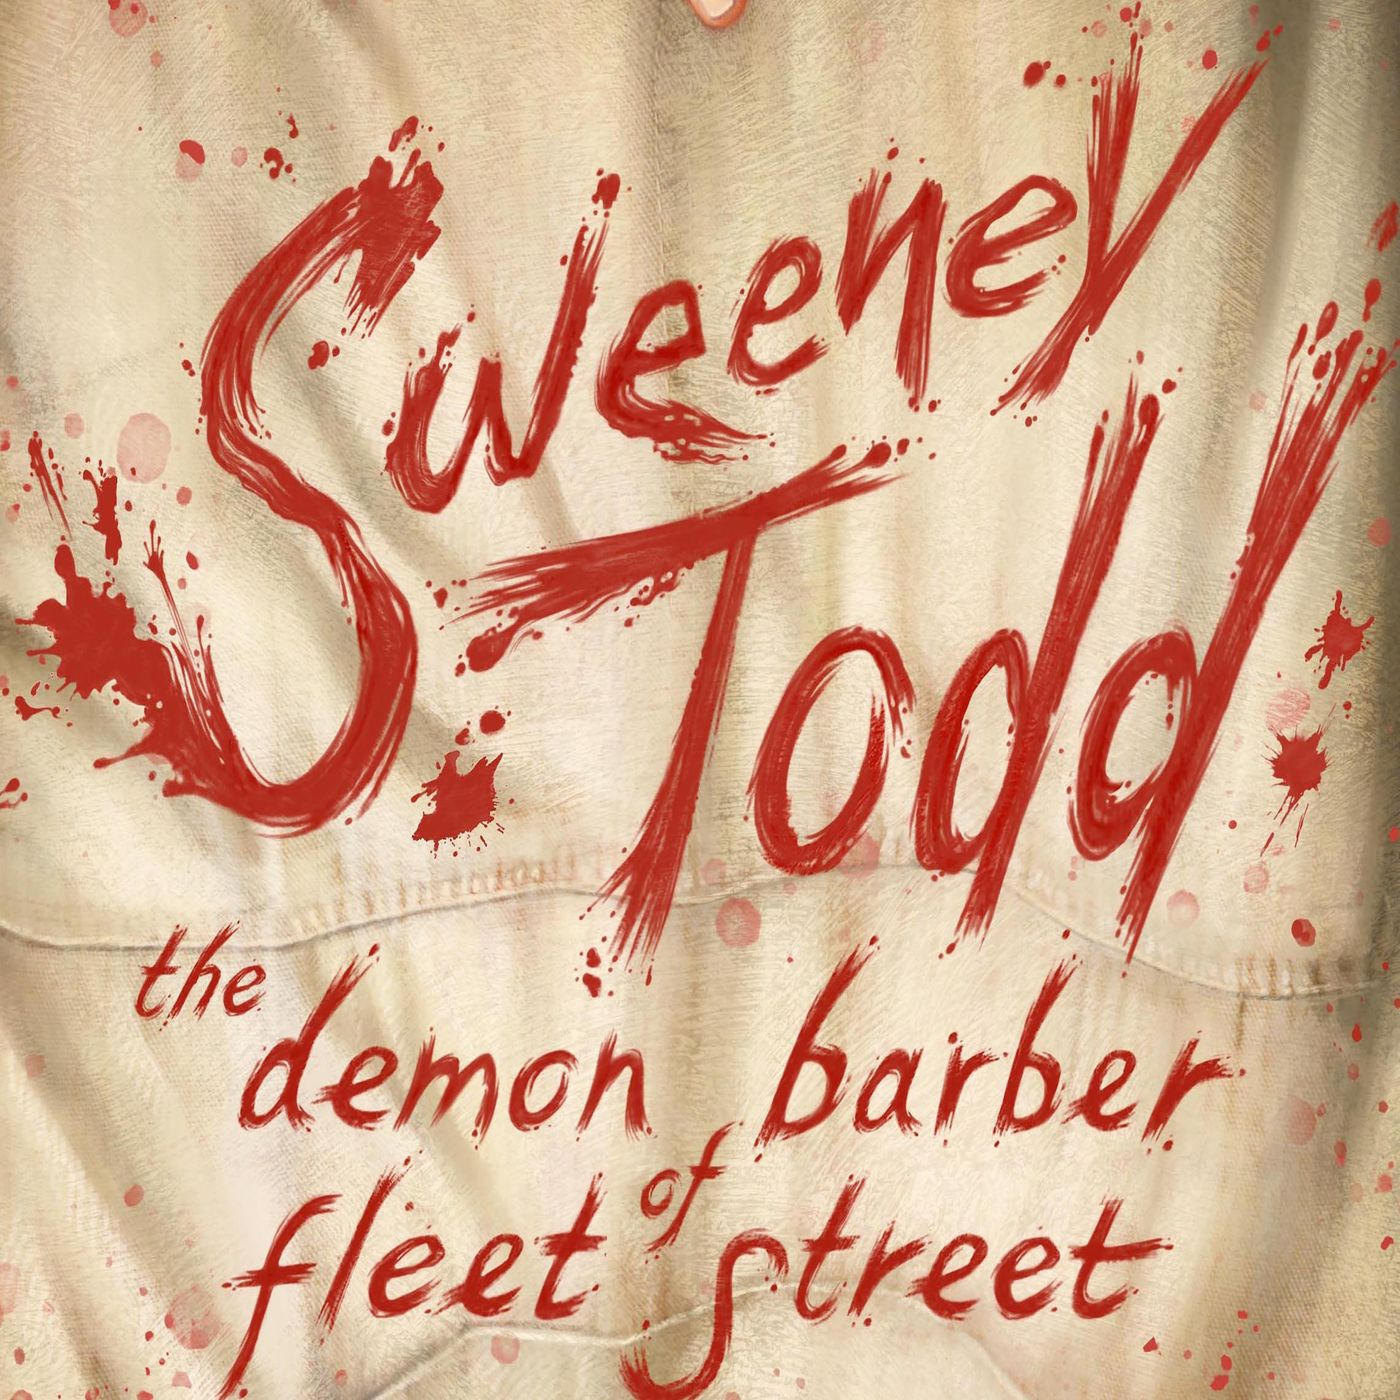 Sondheim, Sweeney Todd and musical theatre history